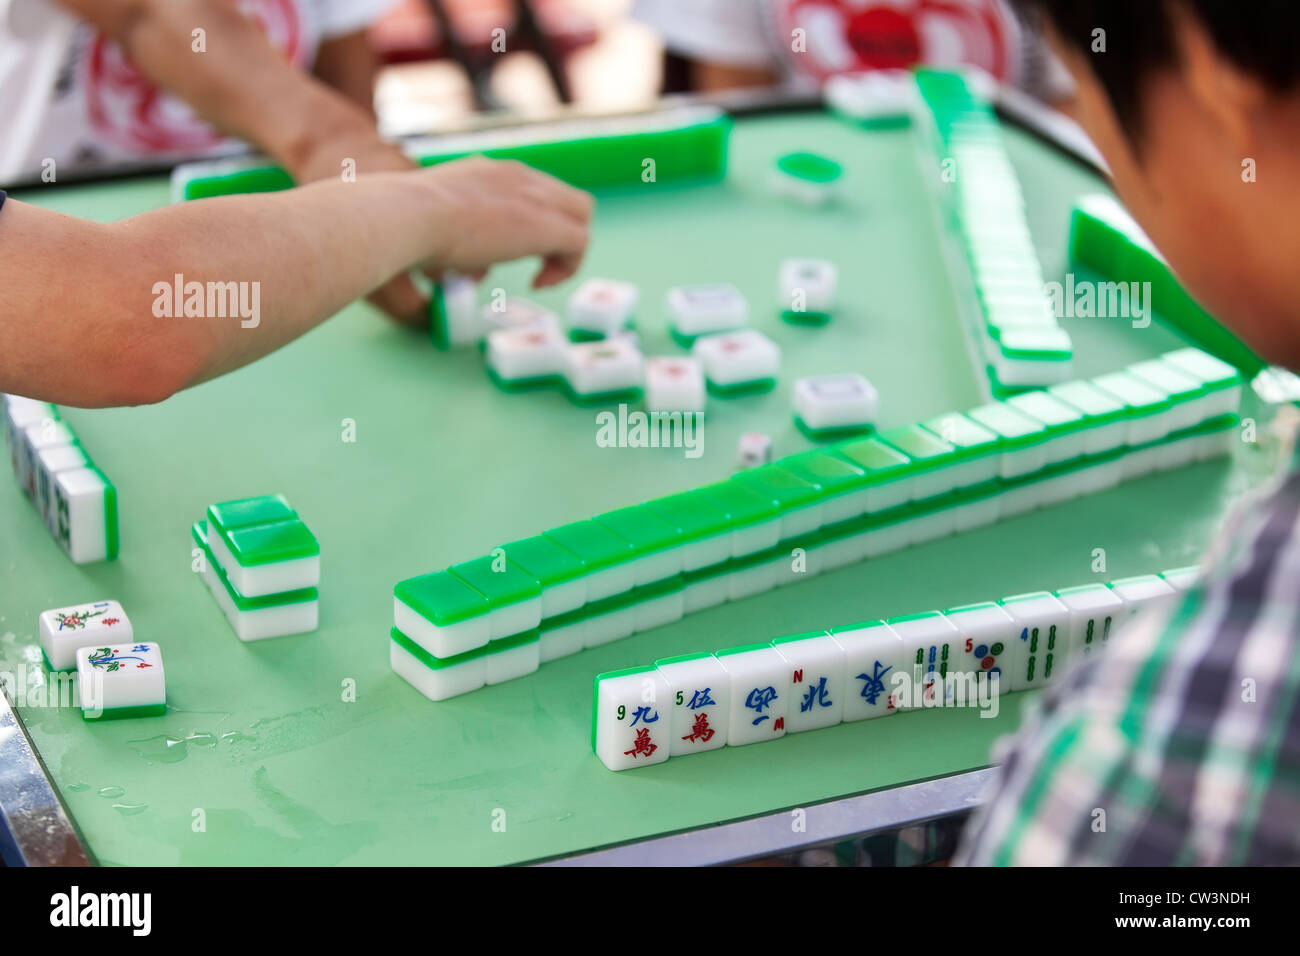 People Playing Chinese Board Game Of Mahjong Stock Photo